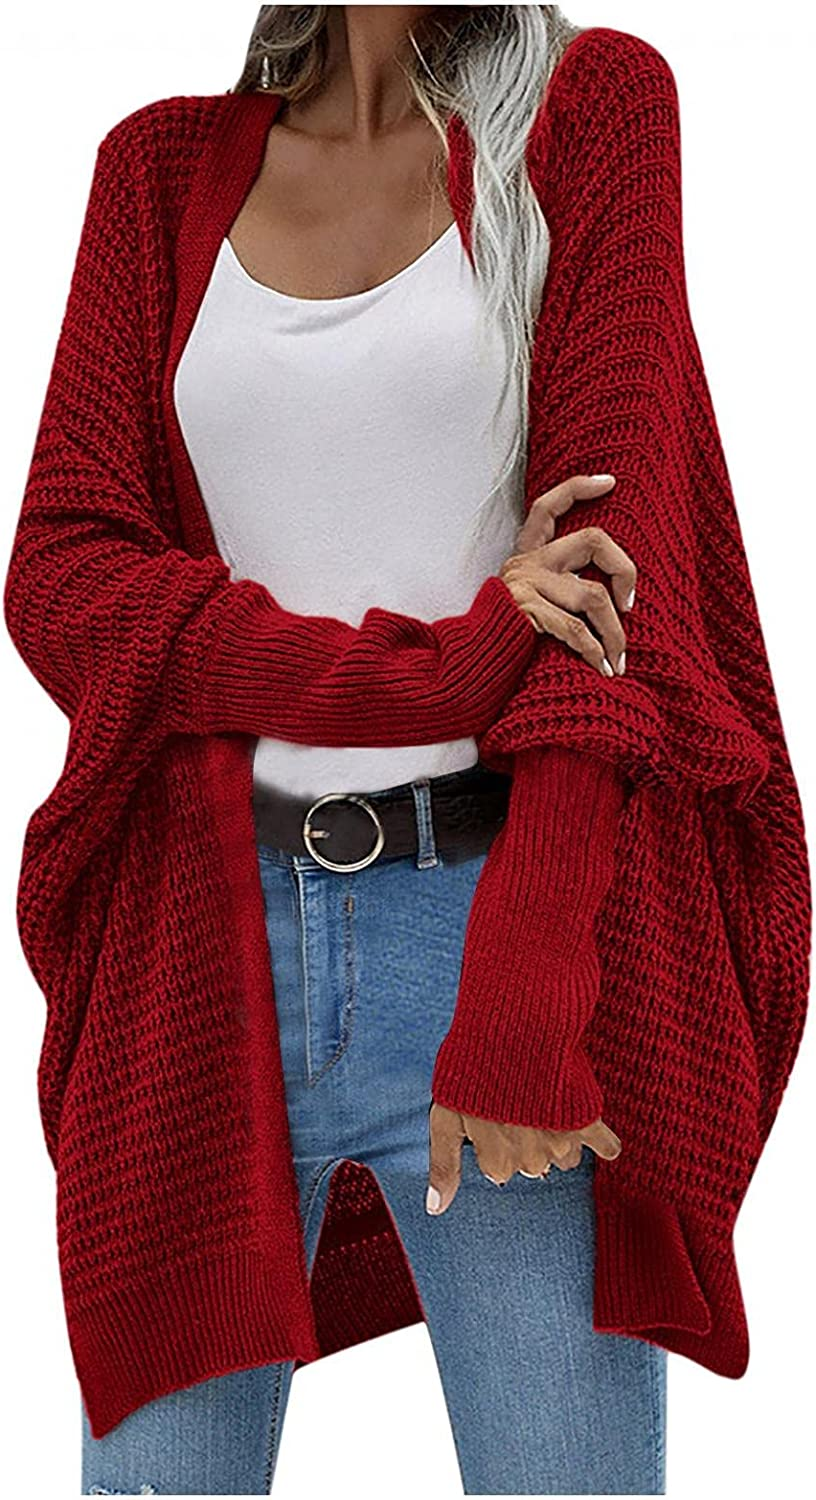 Oversized Sweaters for Women Cardigan Open Front Long Sleeve Blouse Casual Solid Color Outwear Tops